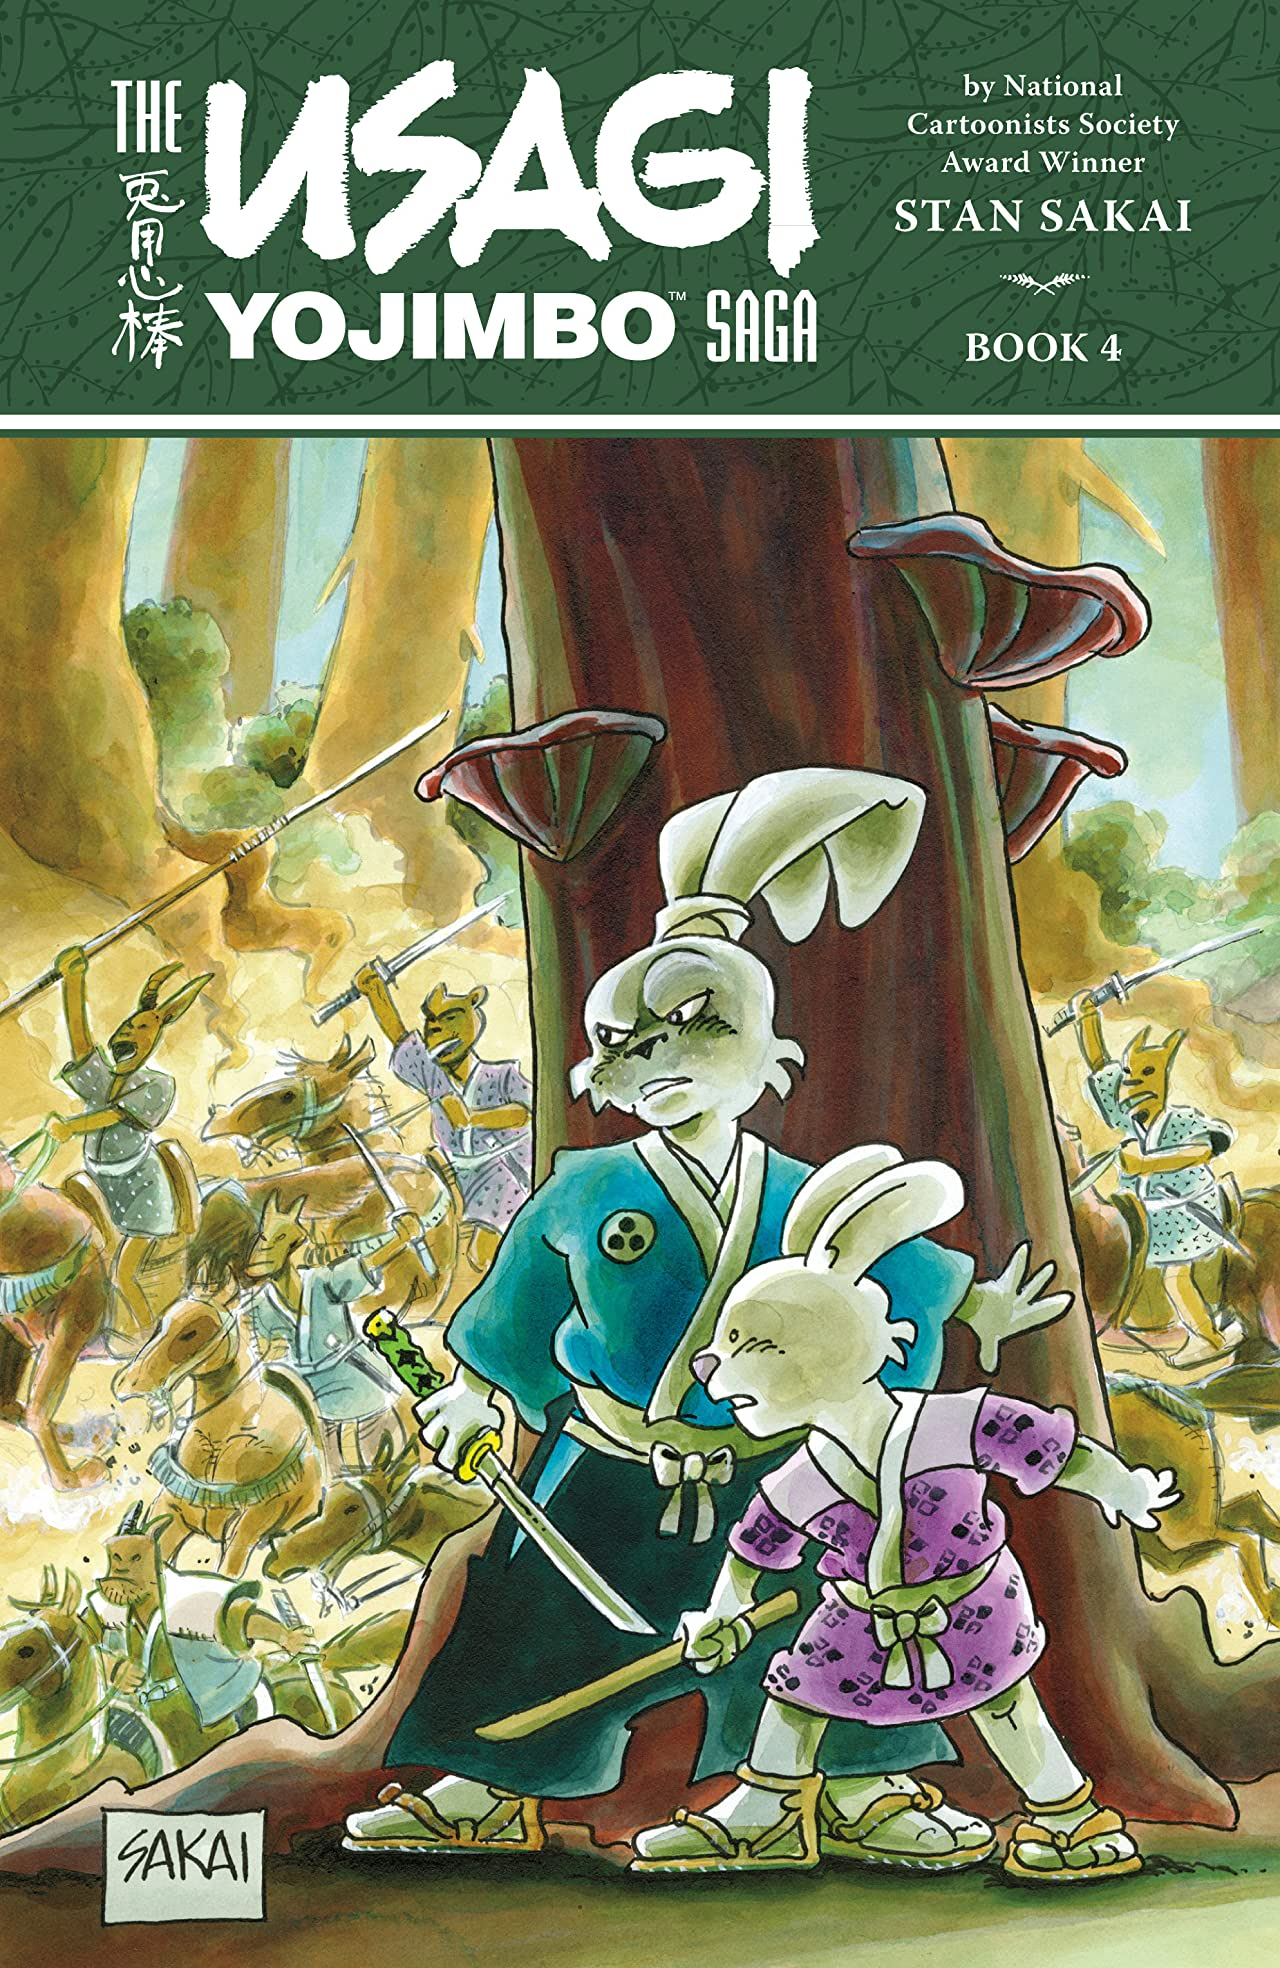 Usagi Yojimbo Saga Vol. 4